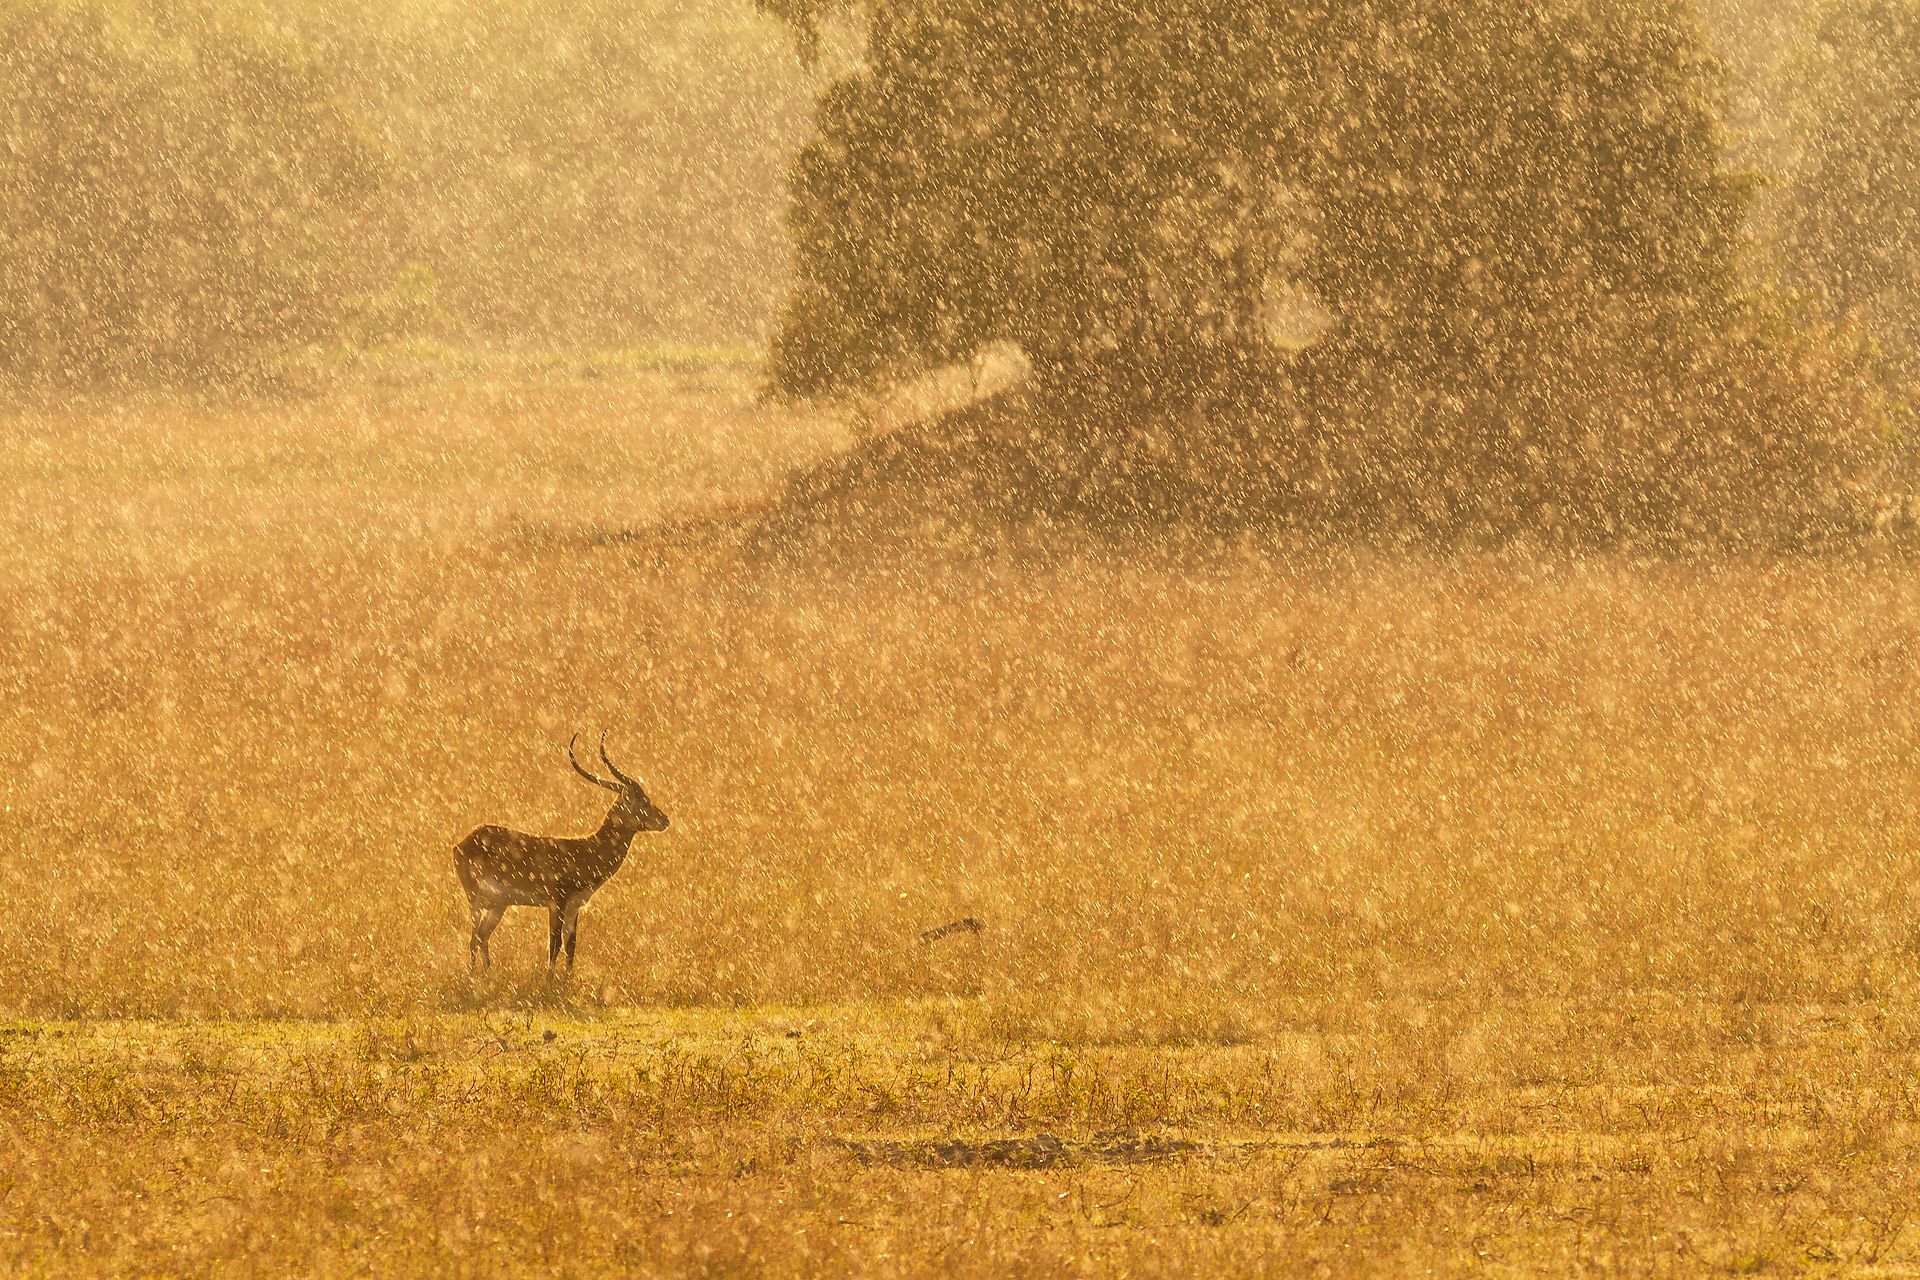 Backlit lechwe in the rain